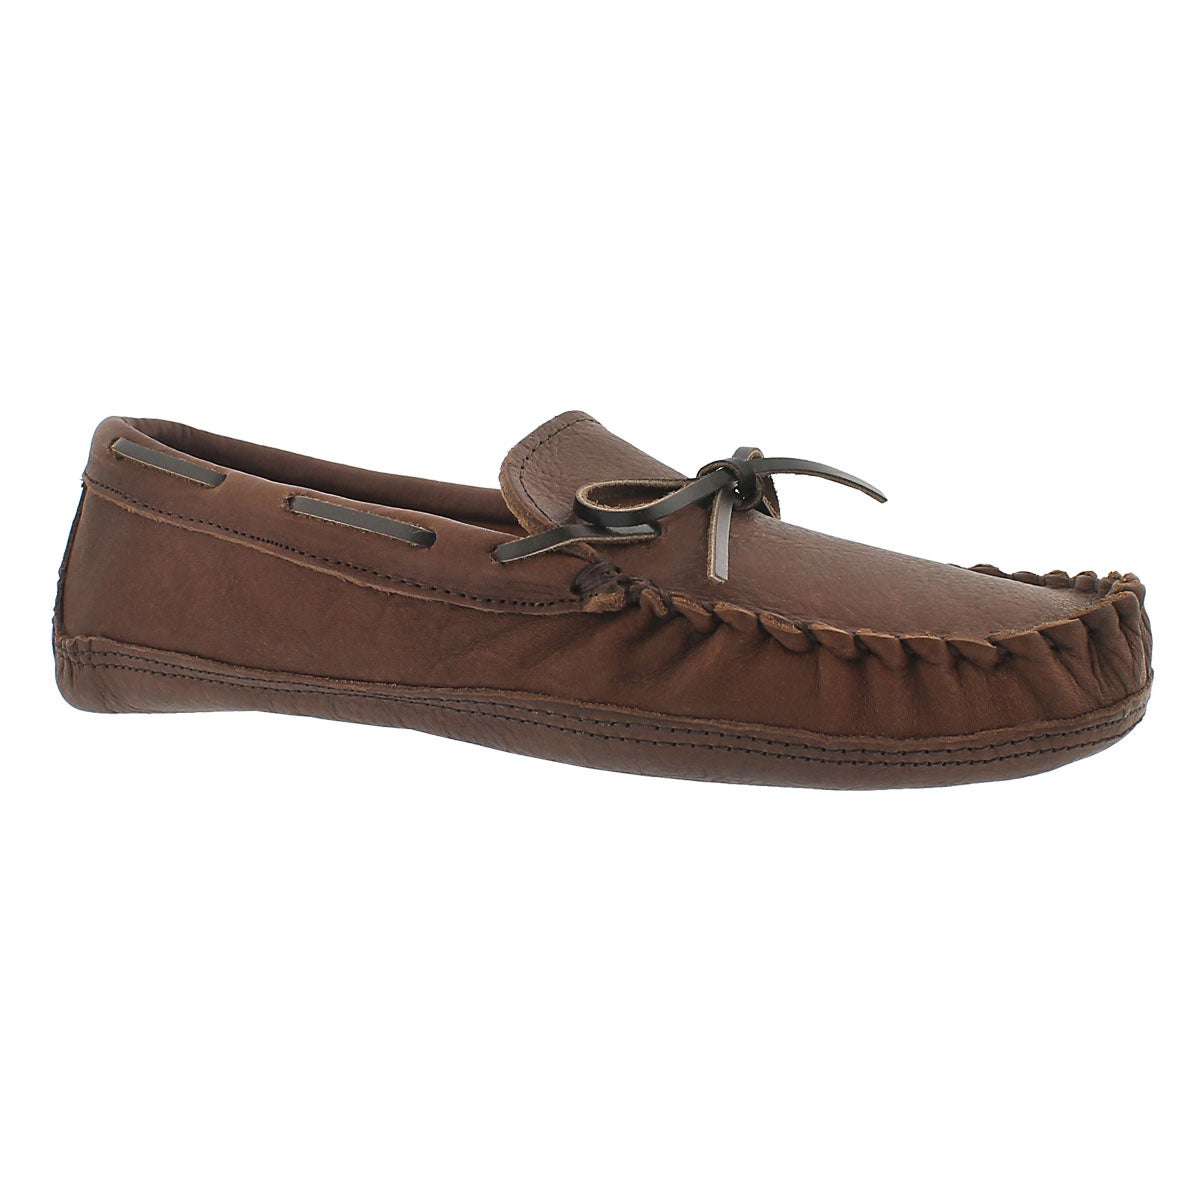 Men's 1471 brown leather moccasins